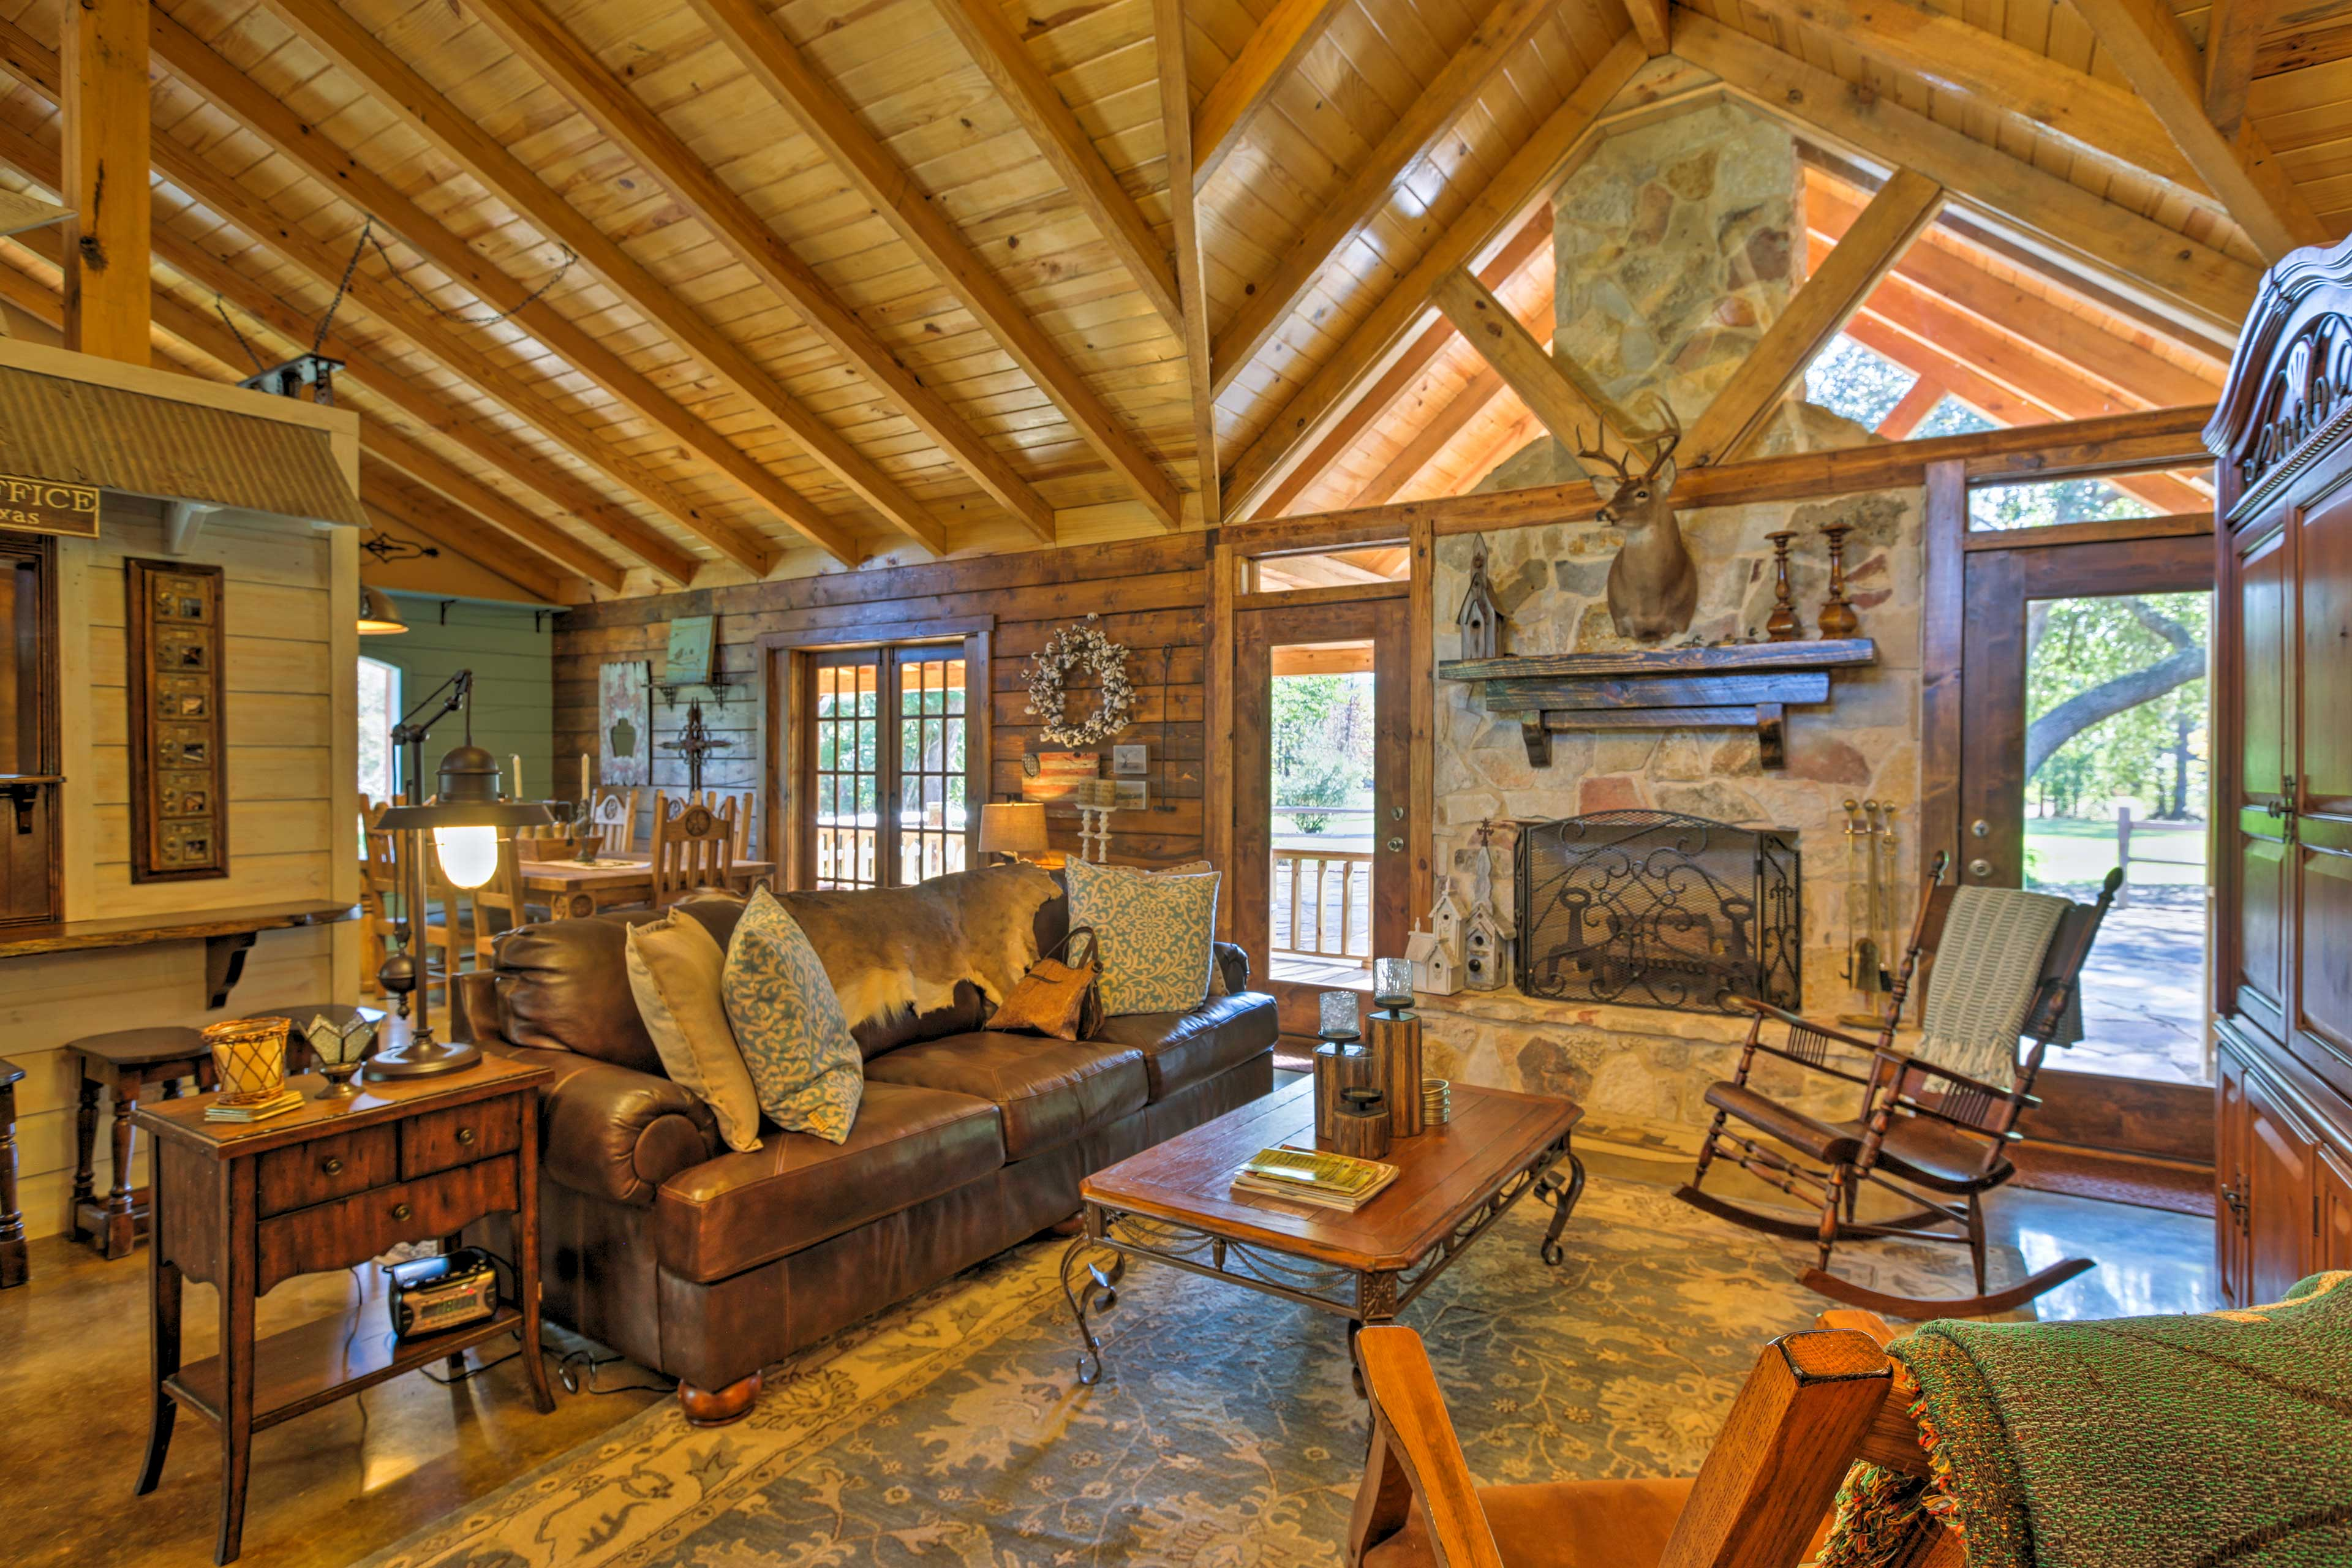 The vaulted ceilings and rustic decor create a warm and peaceful ambiance.